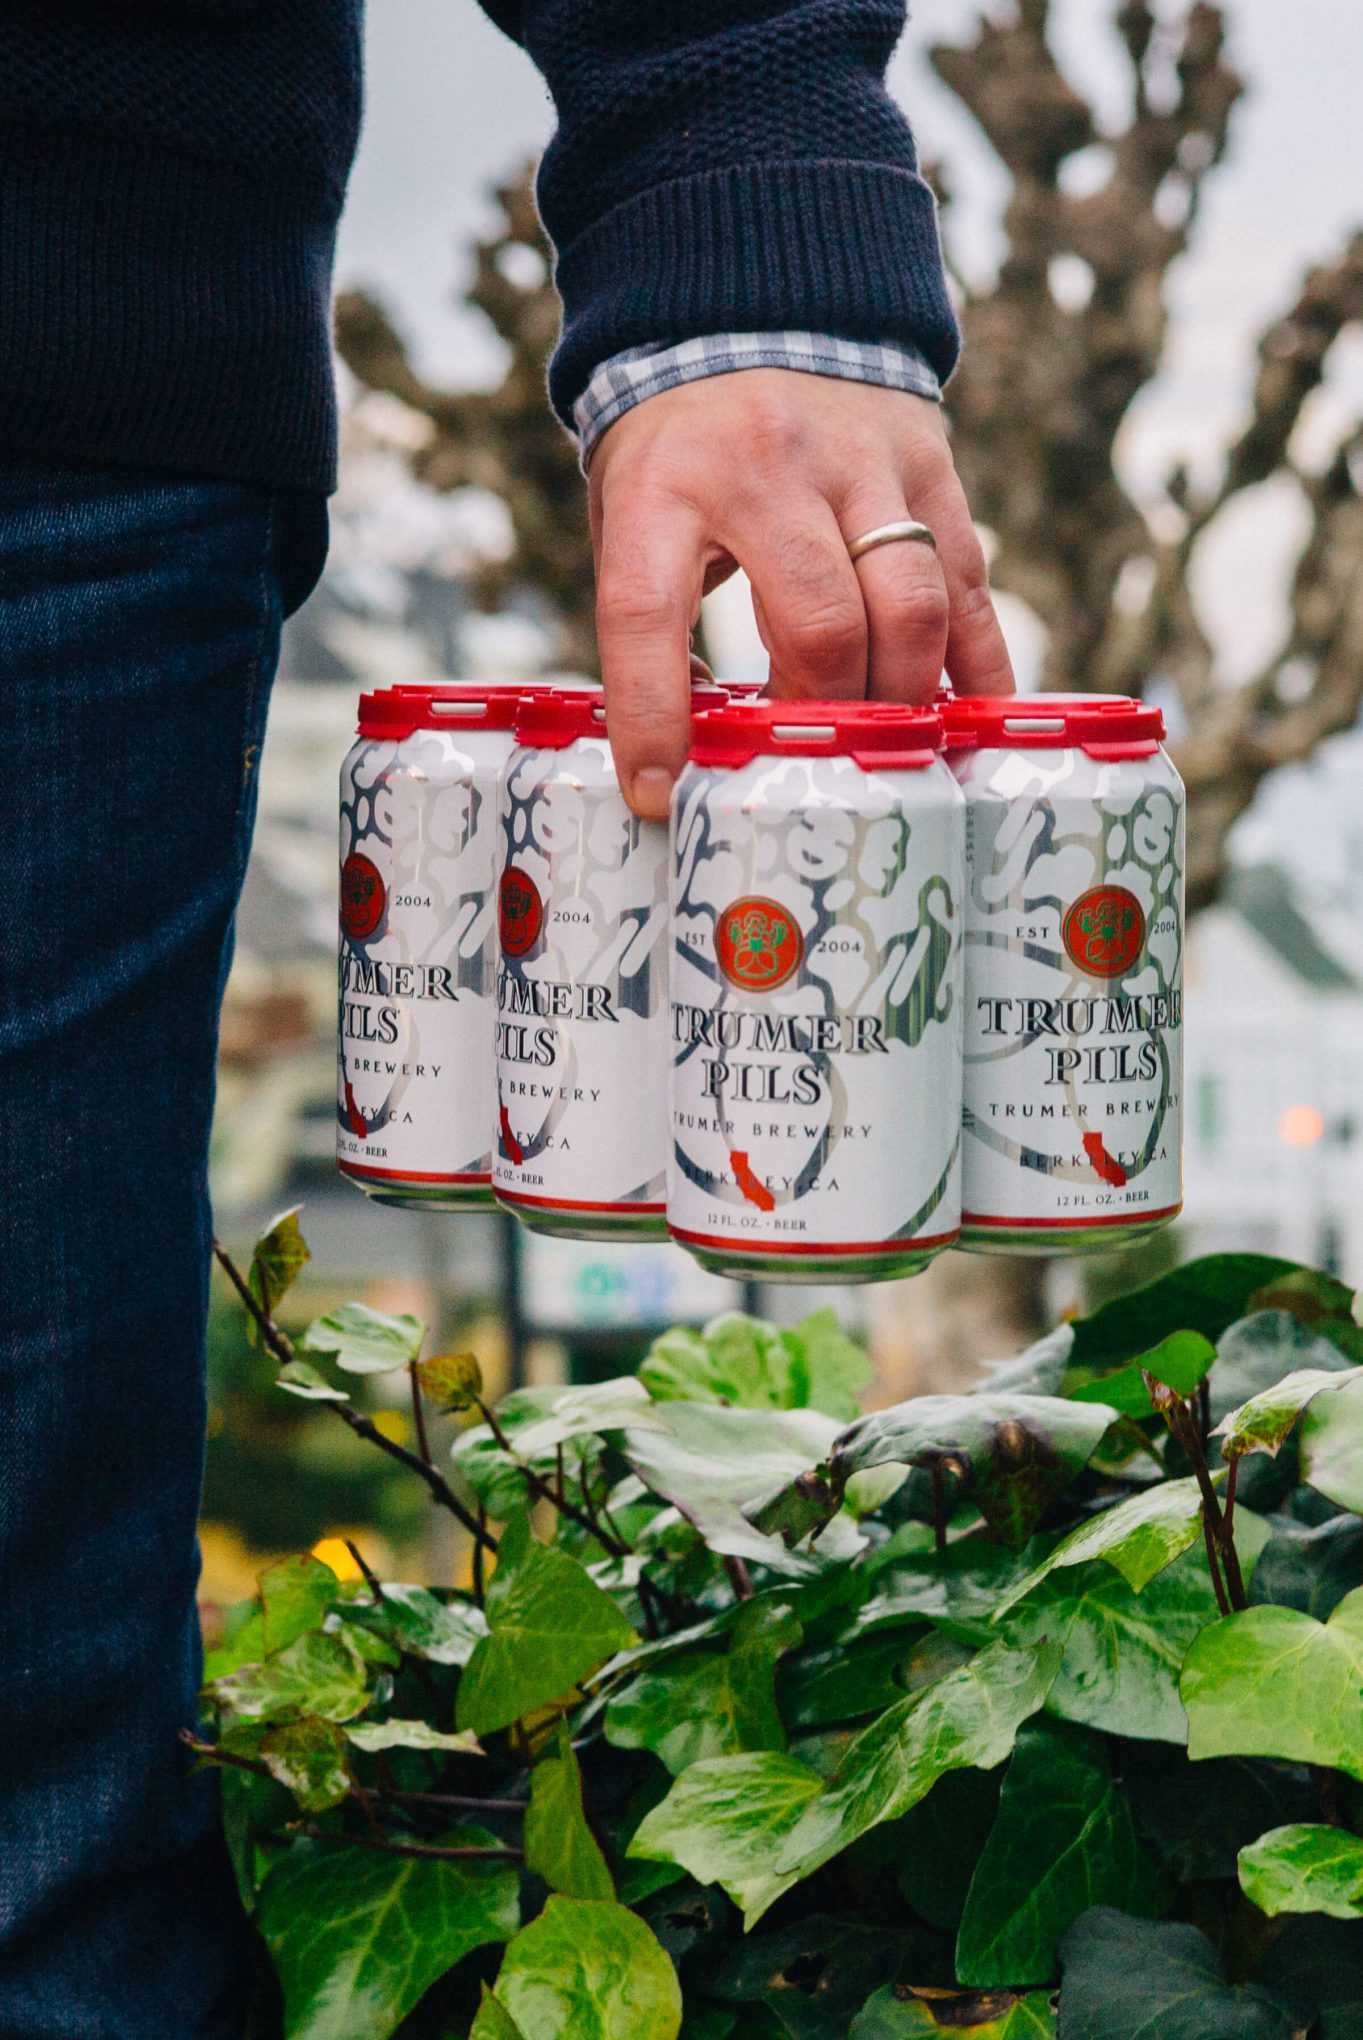 The Taste SF carrying Trumer Pils beer now available in Cans up the hills of San Francisco